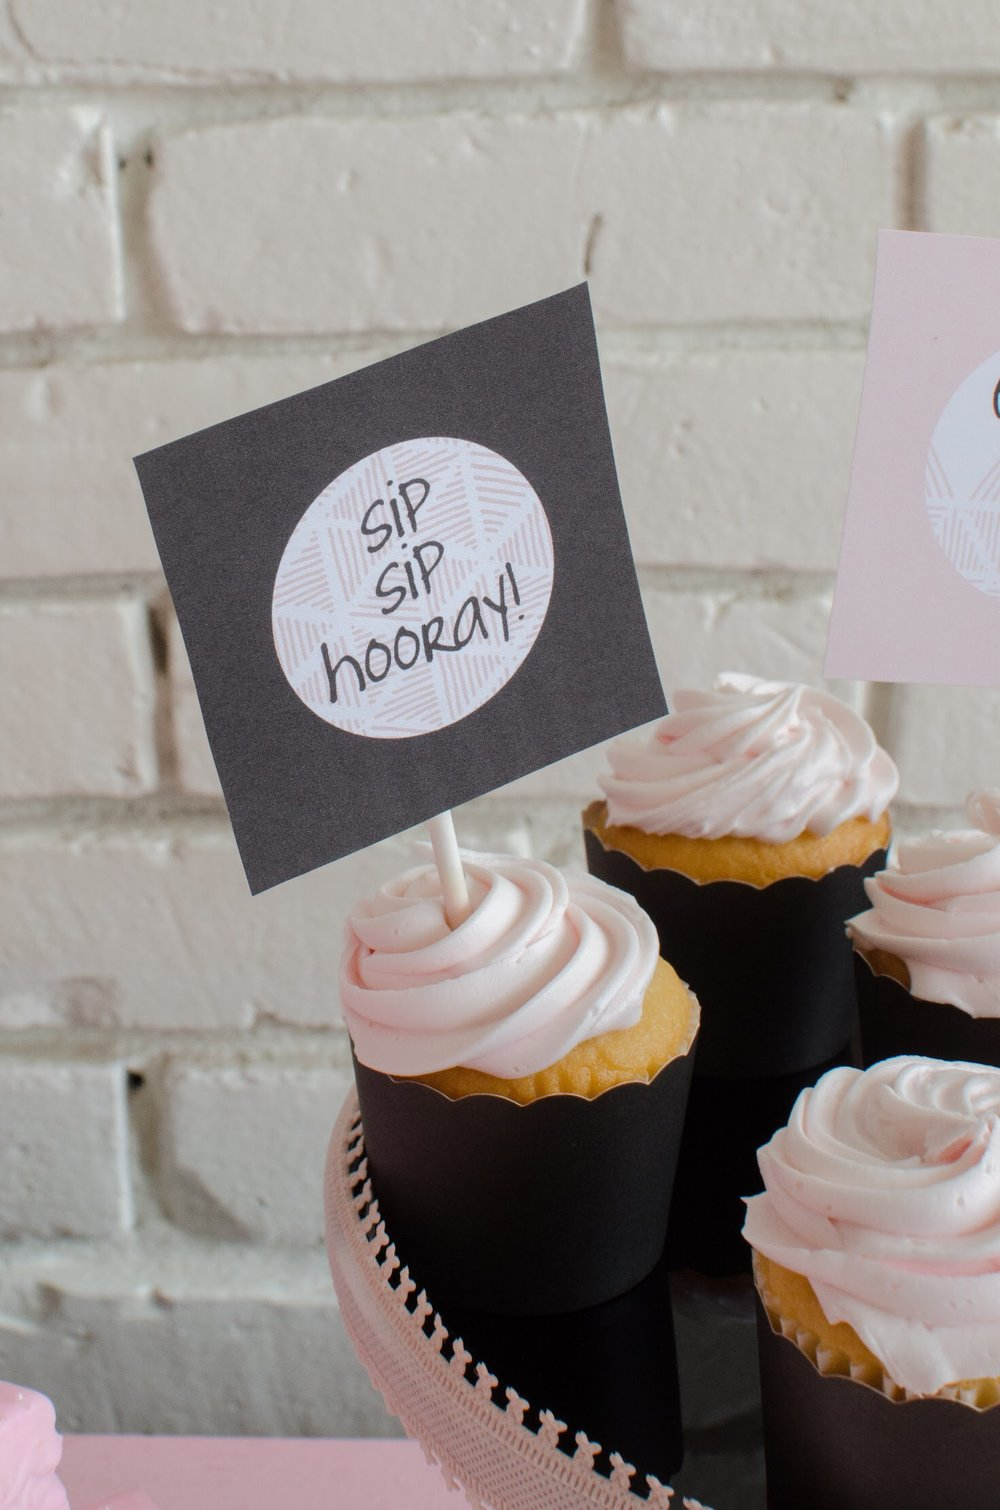 Sip, Sip, Hooray! Fun free printable cupcake toppers from Mint Event Design